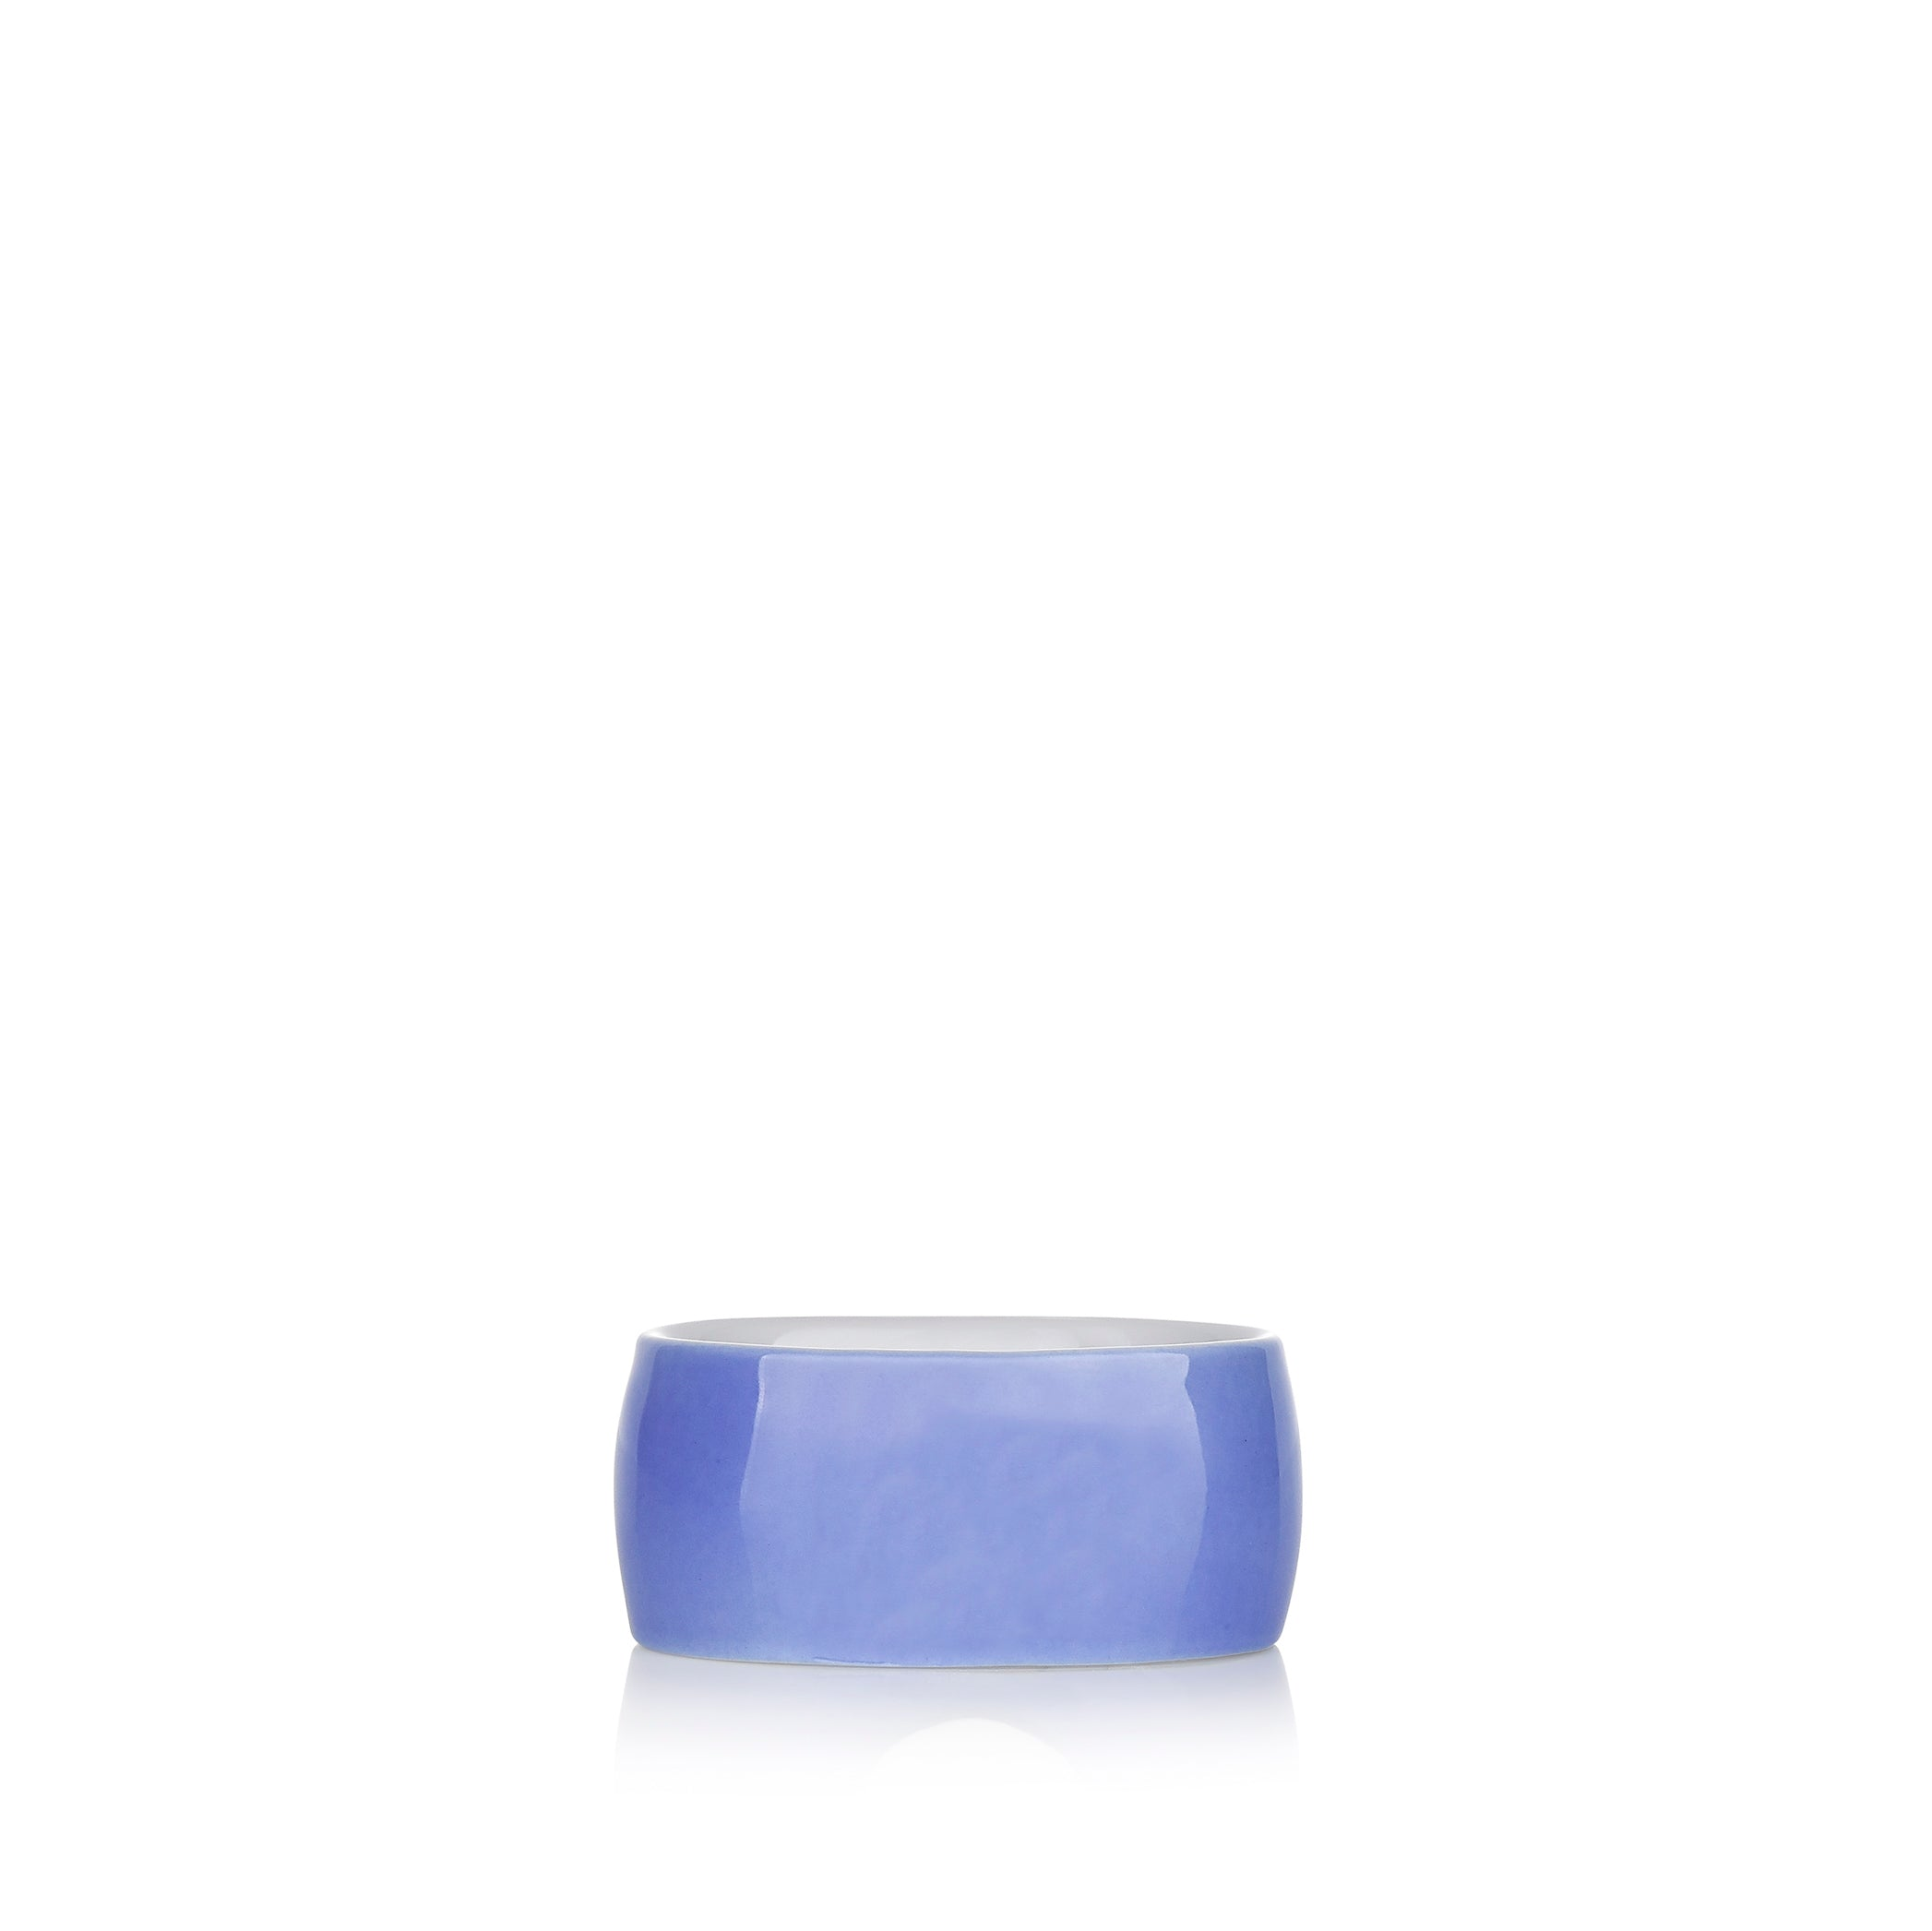 S&B Porcelain Napkin Ring in Blue